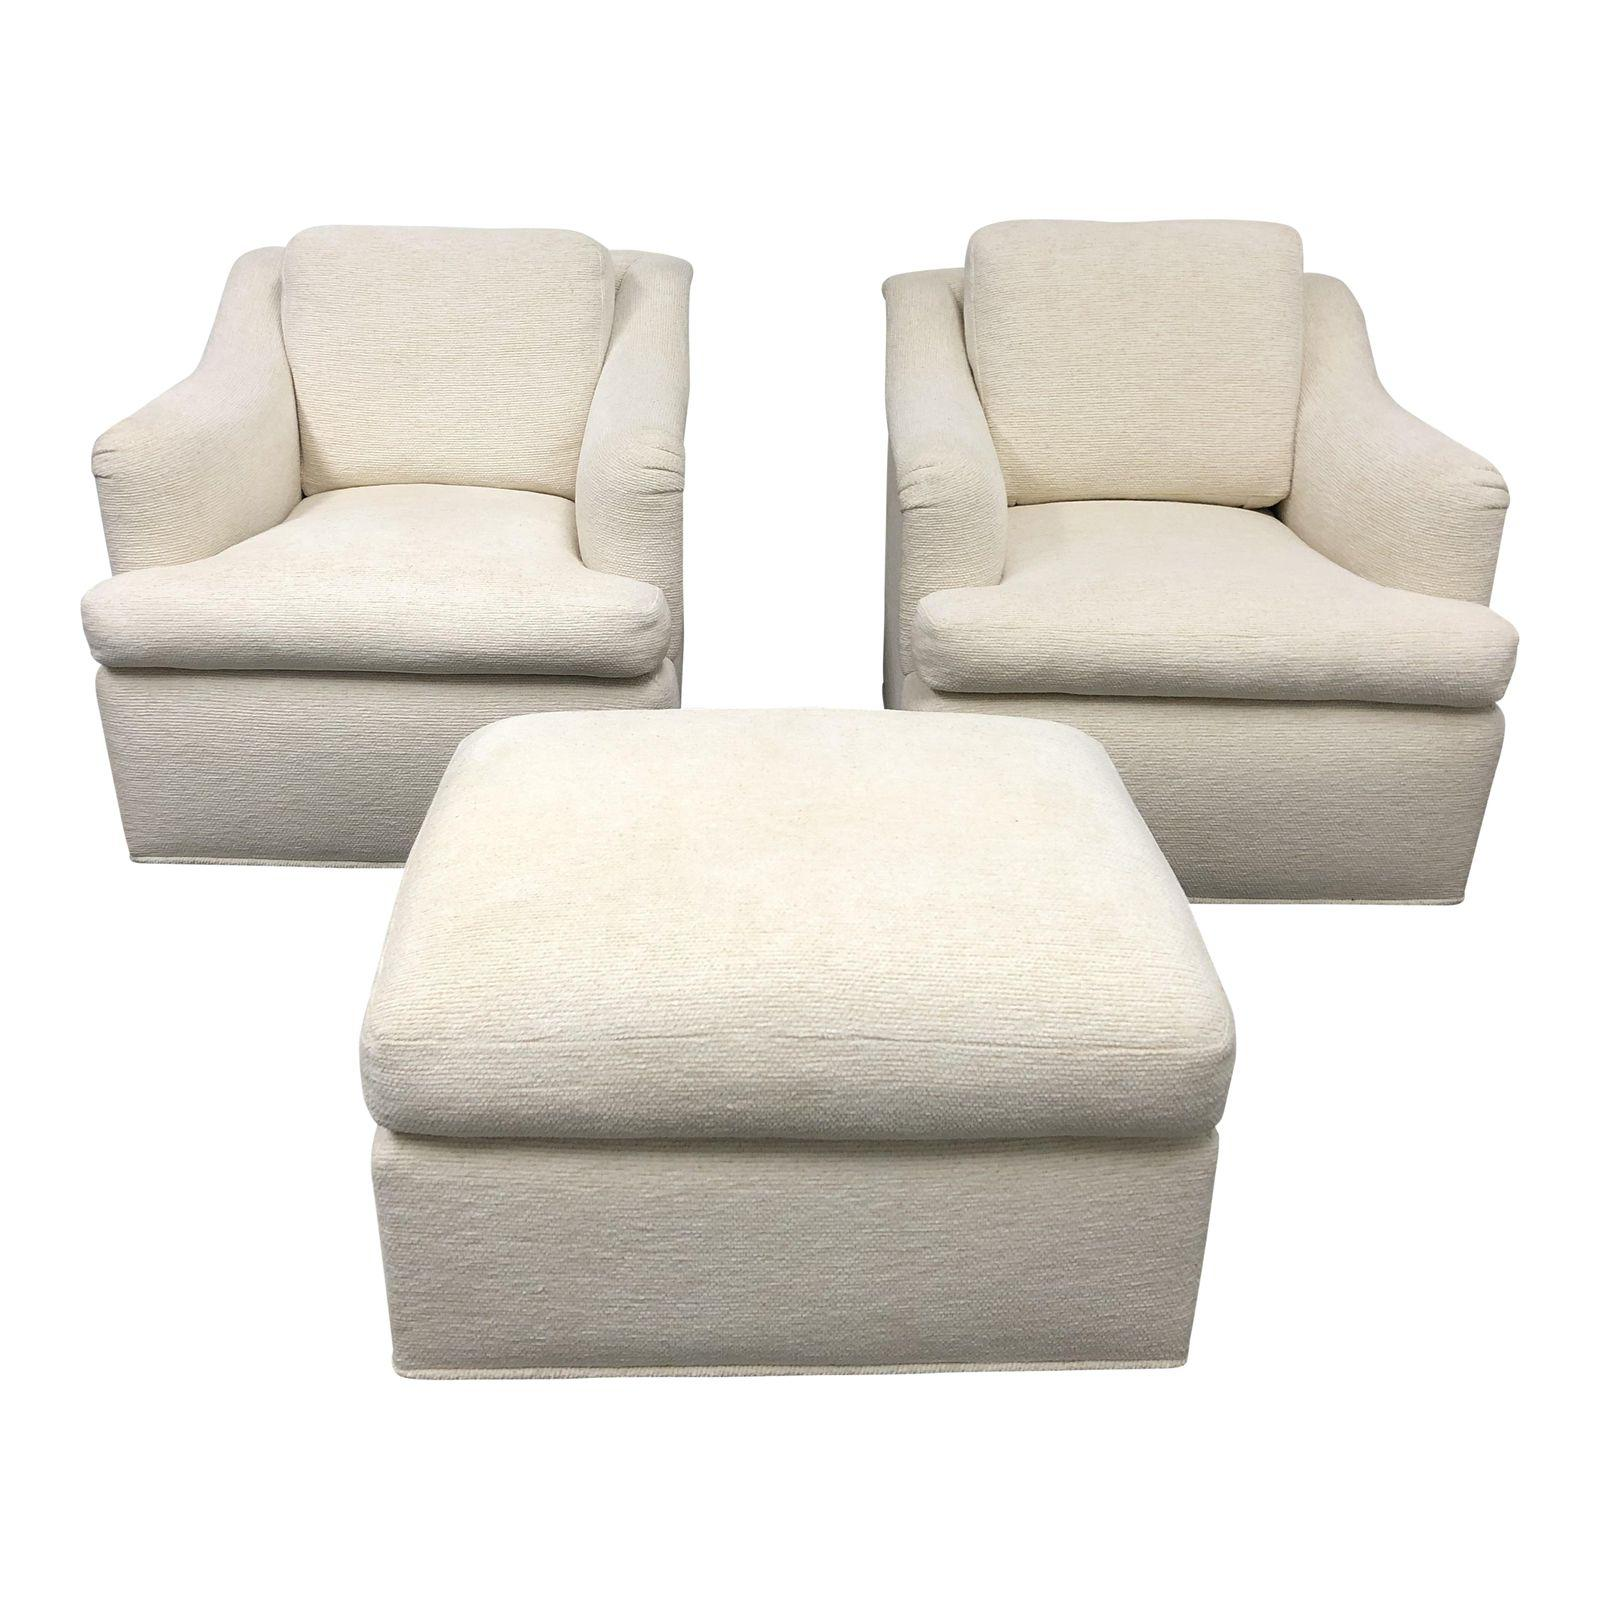 Swivel arm chairs living room for Swivel armchairs for living room